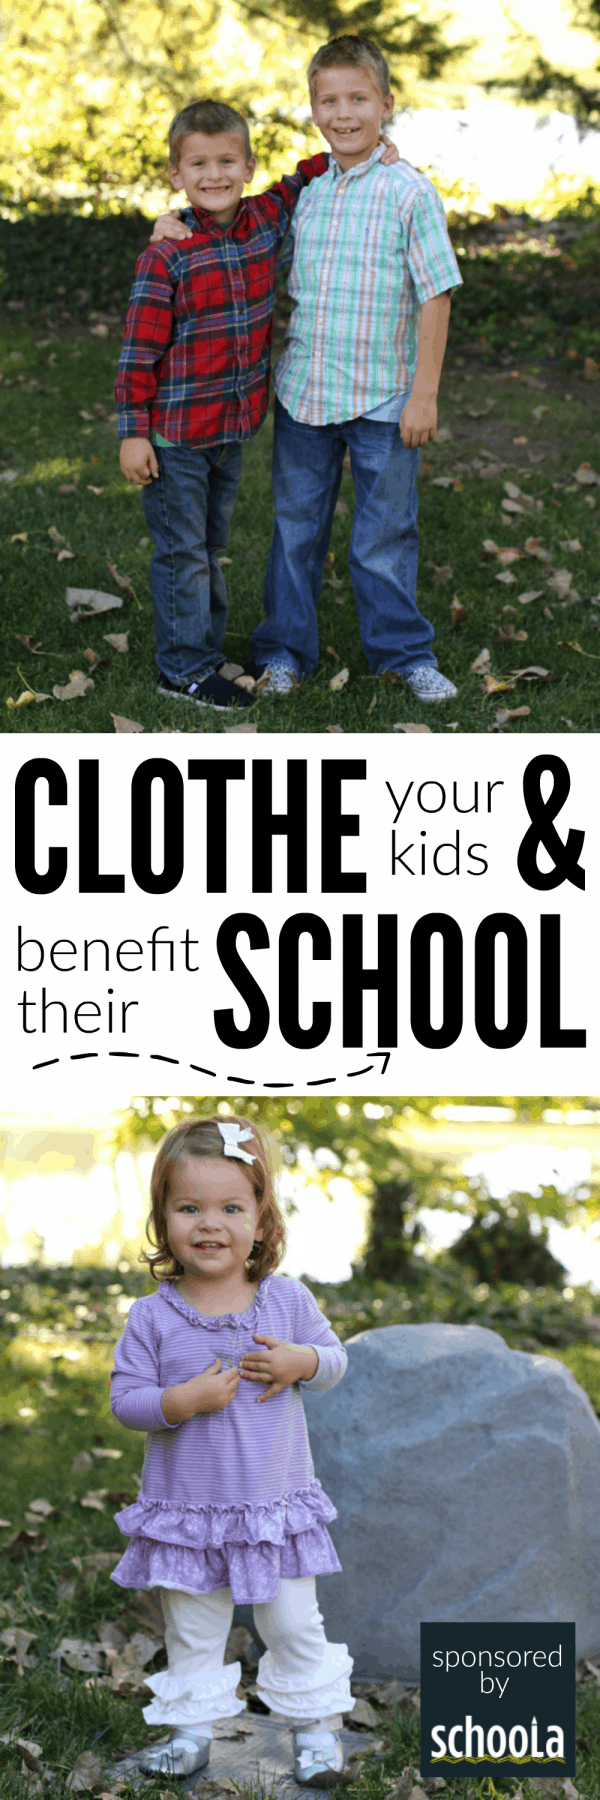 Clothe your Kids and Benefit their School with Schoola